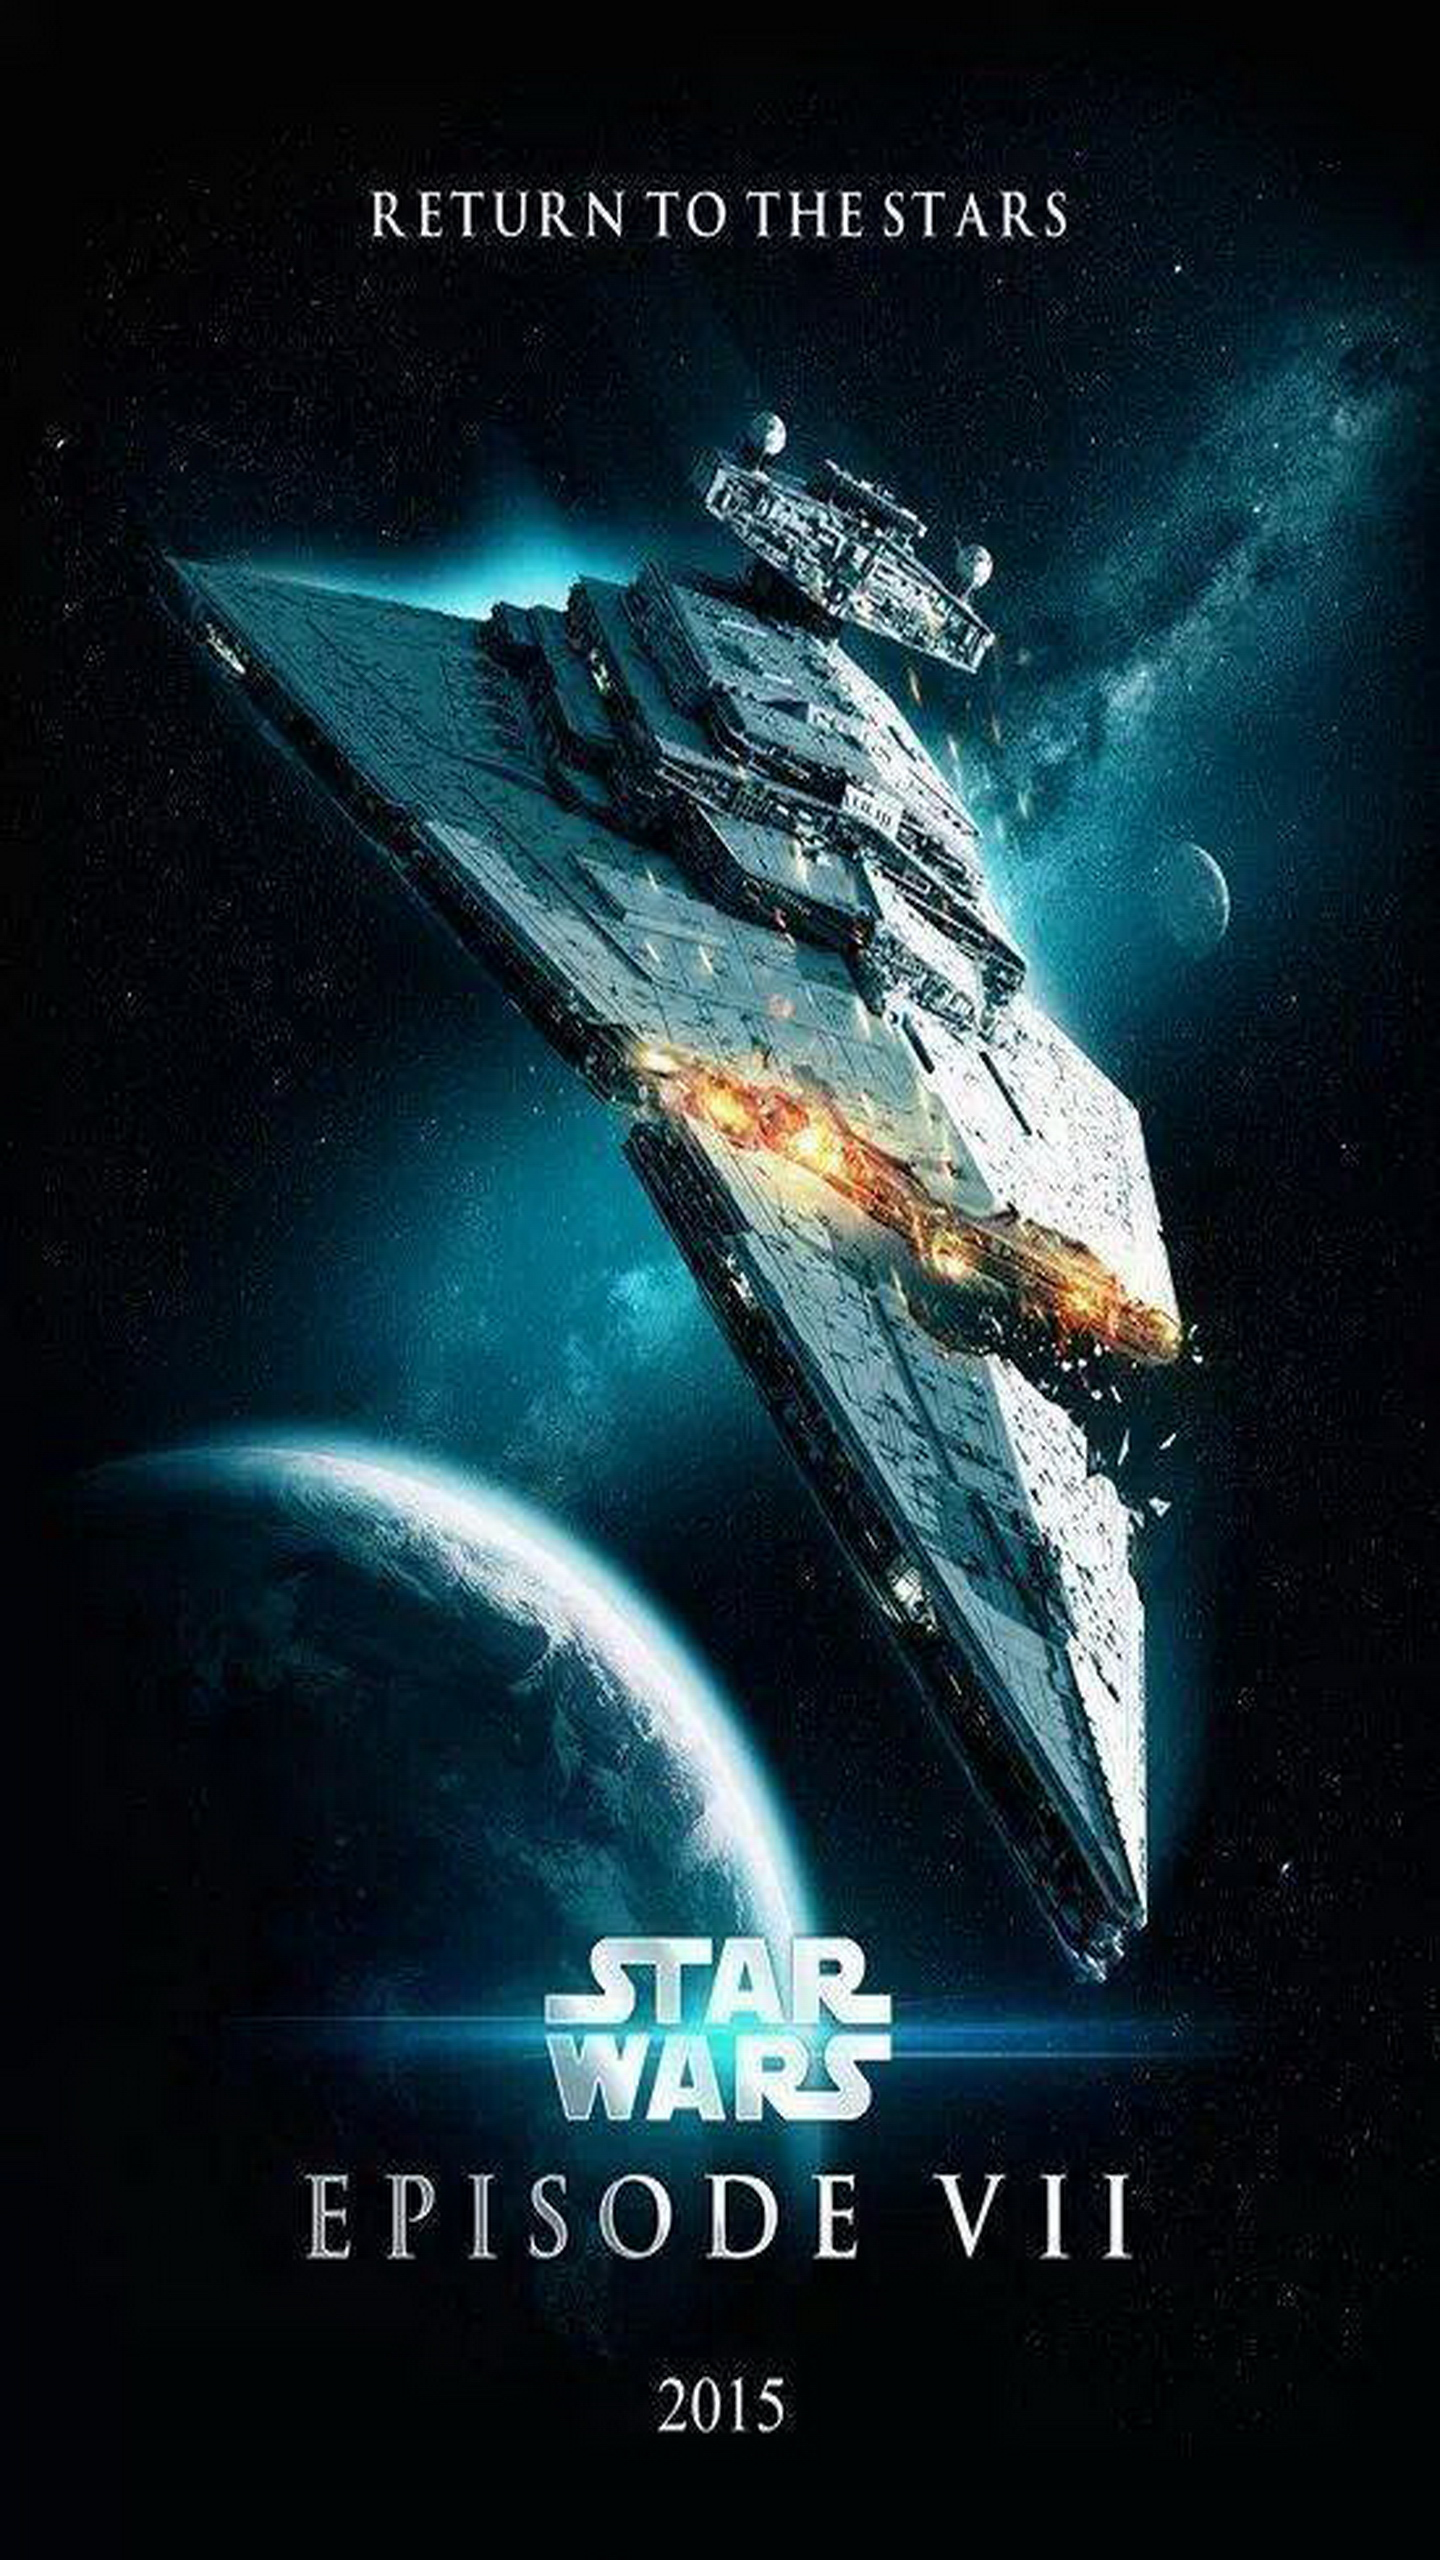 wallpaper image name star wars episode vii 2015 poster pictures hd Car 1440x2560